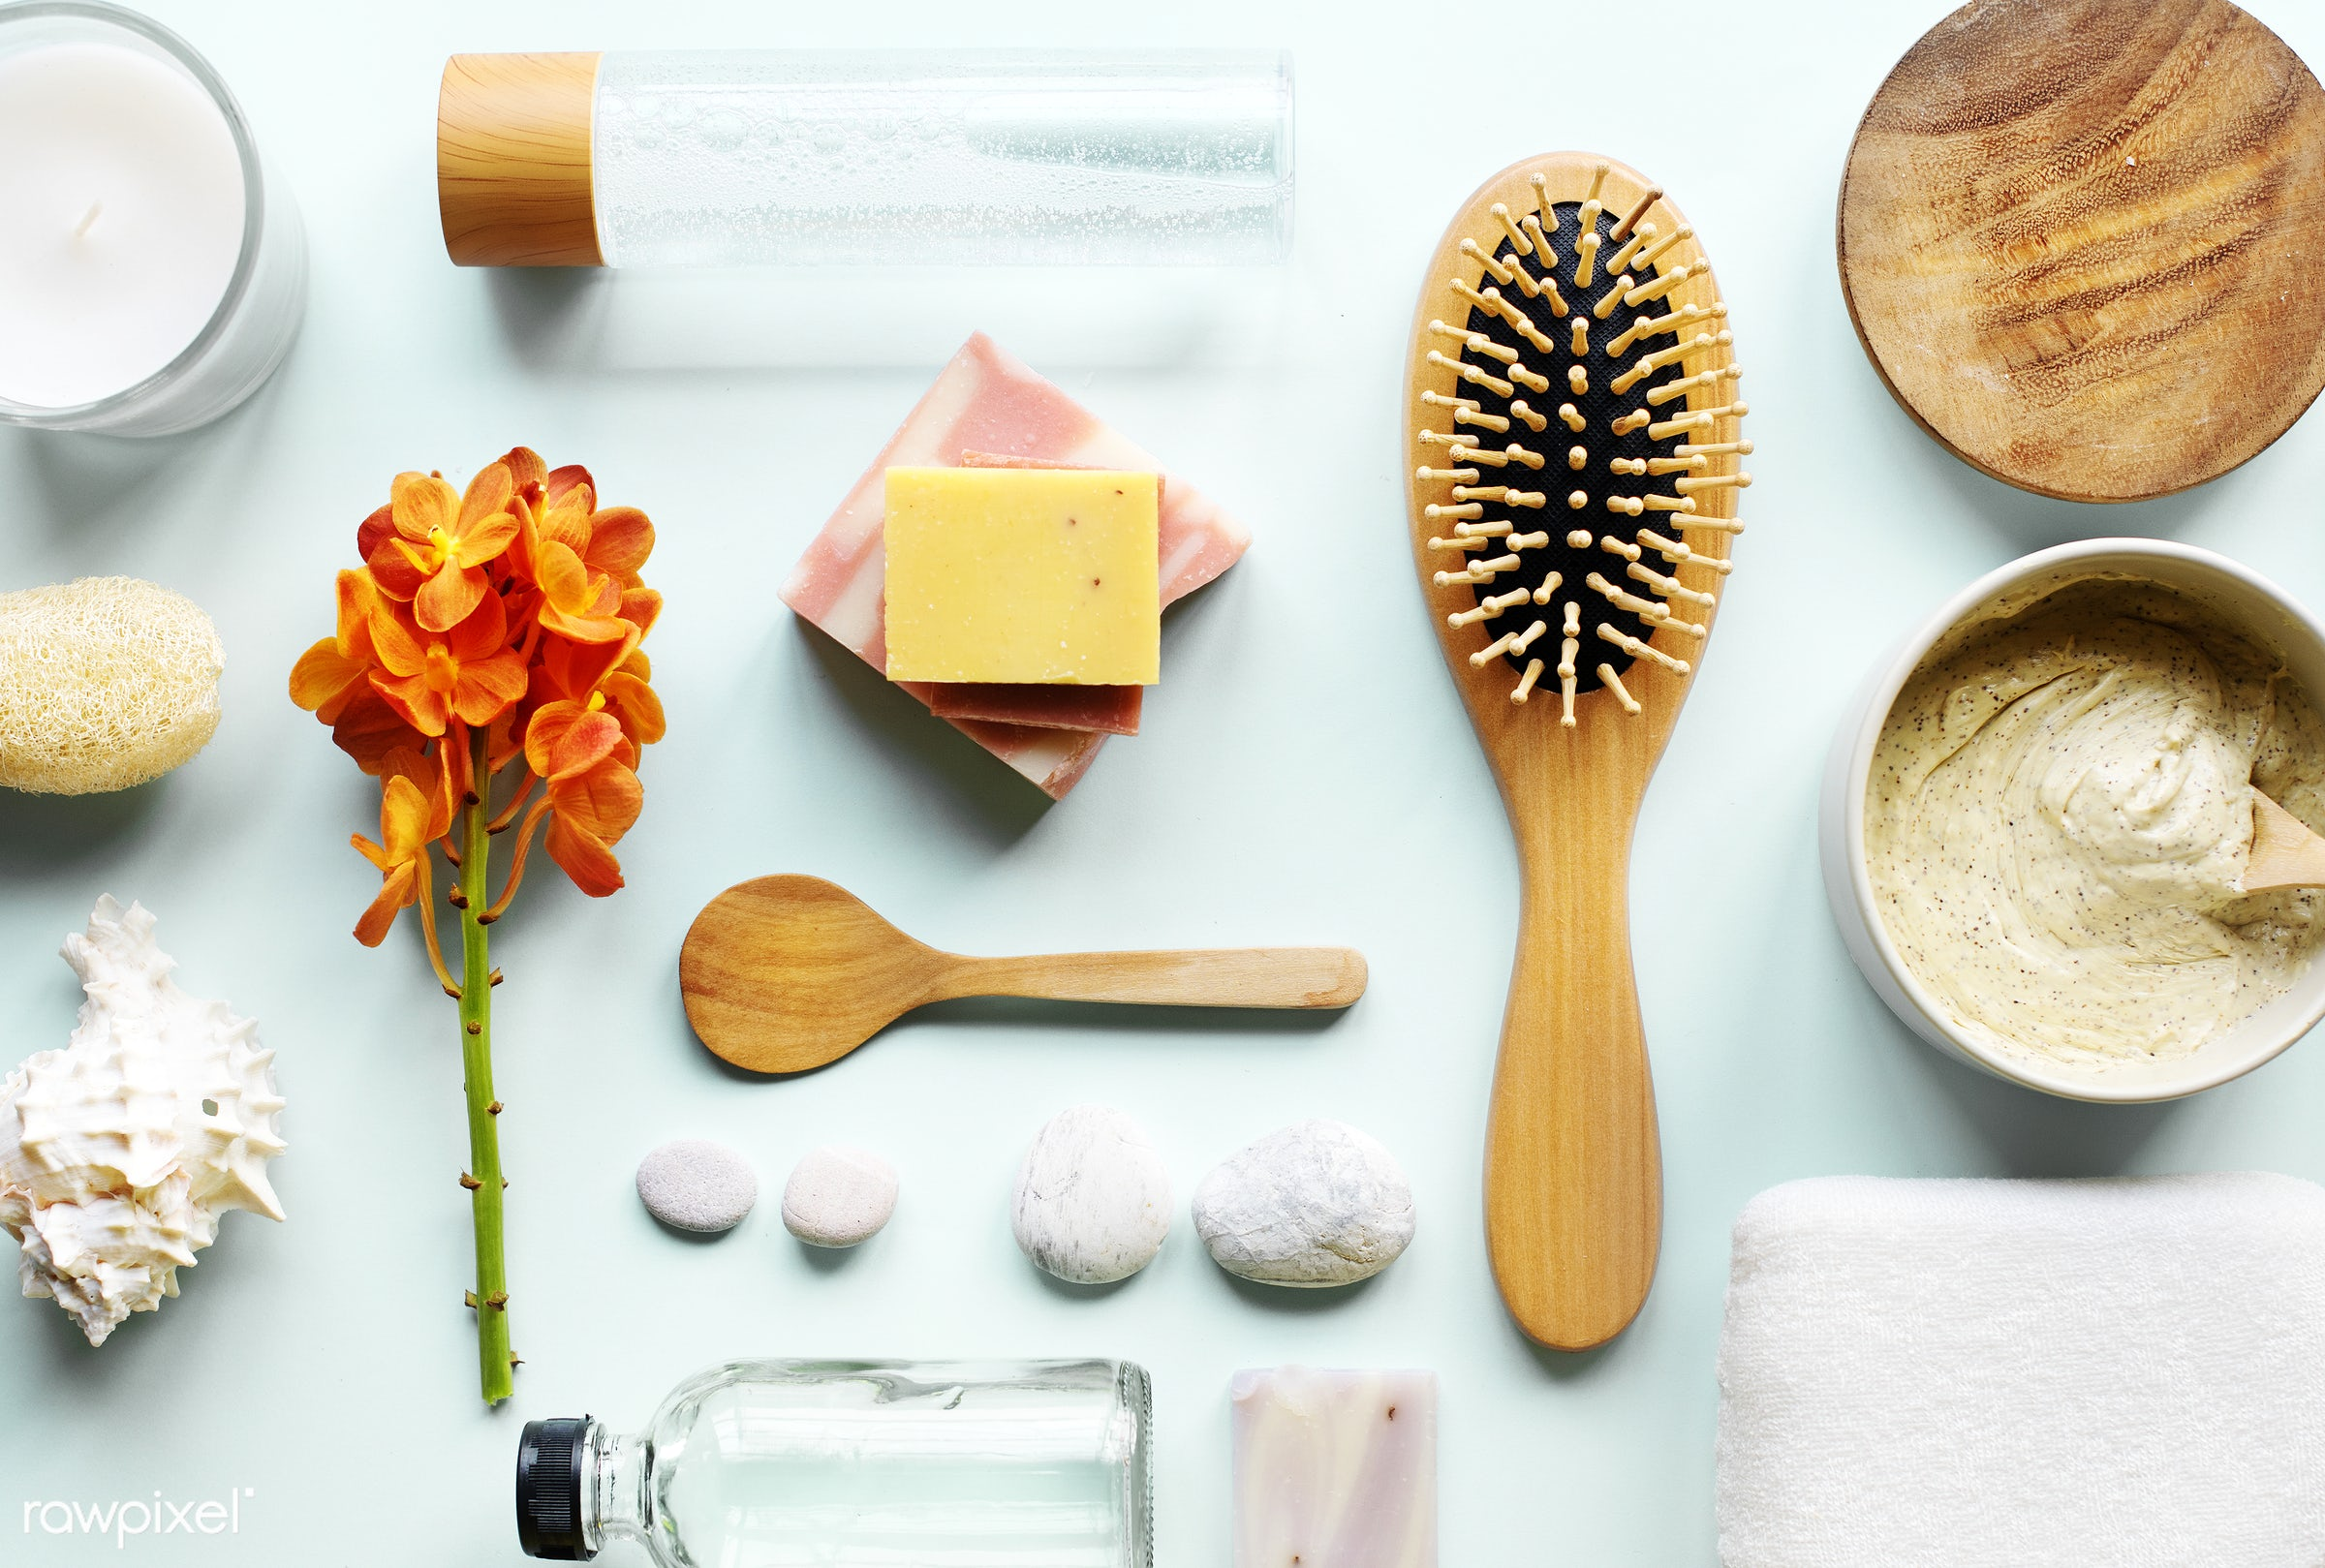 Flatlay of spa and beauty products - aroma, aromatherapy, bath, beauty, bodycare, brush, candle, care, comb, cosmetics,...